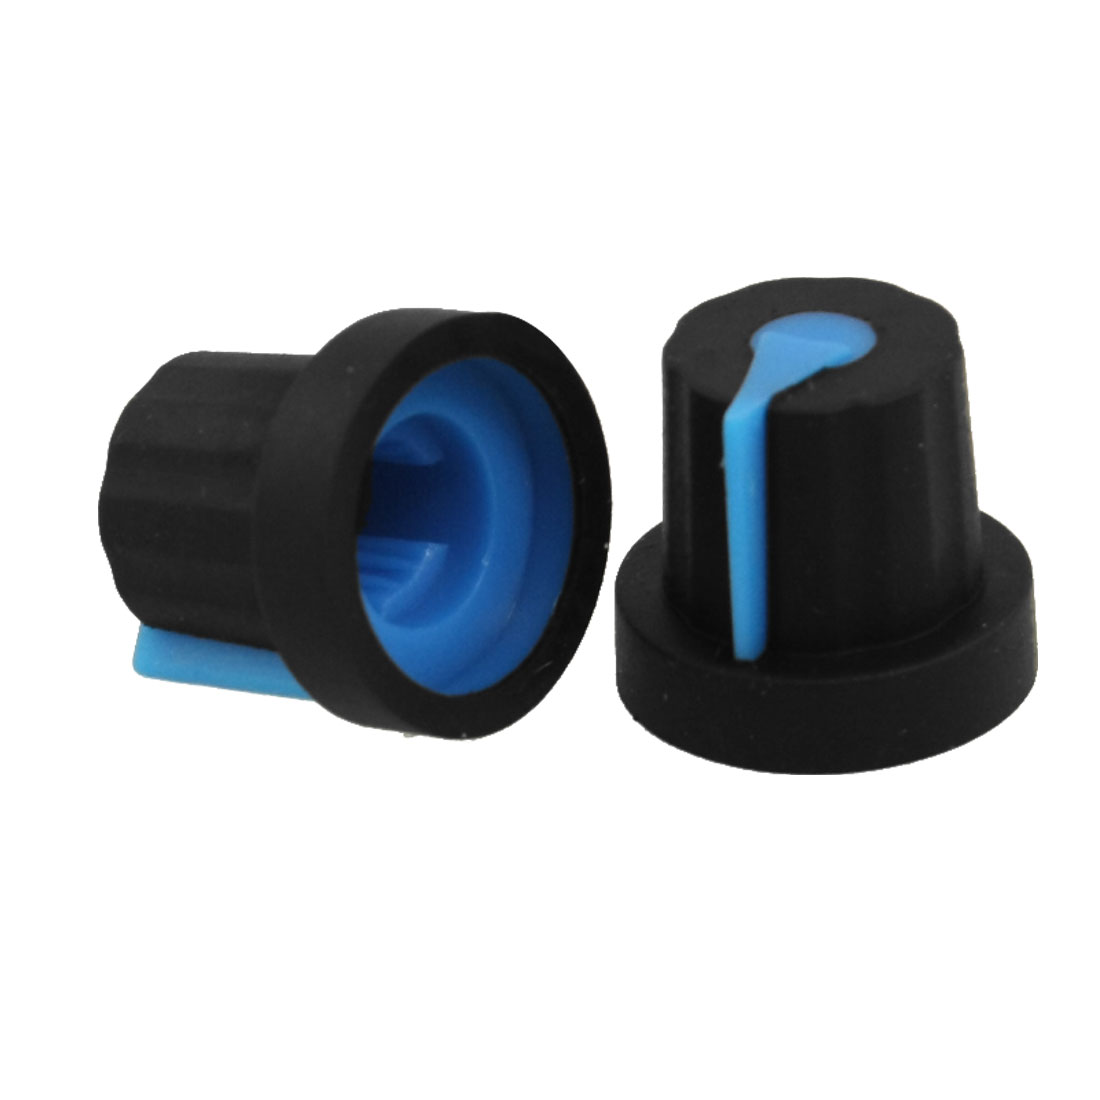 10 Pcs 6mm Split Shaft Insert Dia Blue Mark Black Potentiometer Knobs Caps